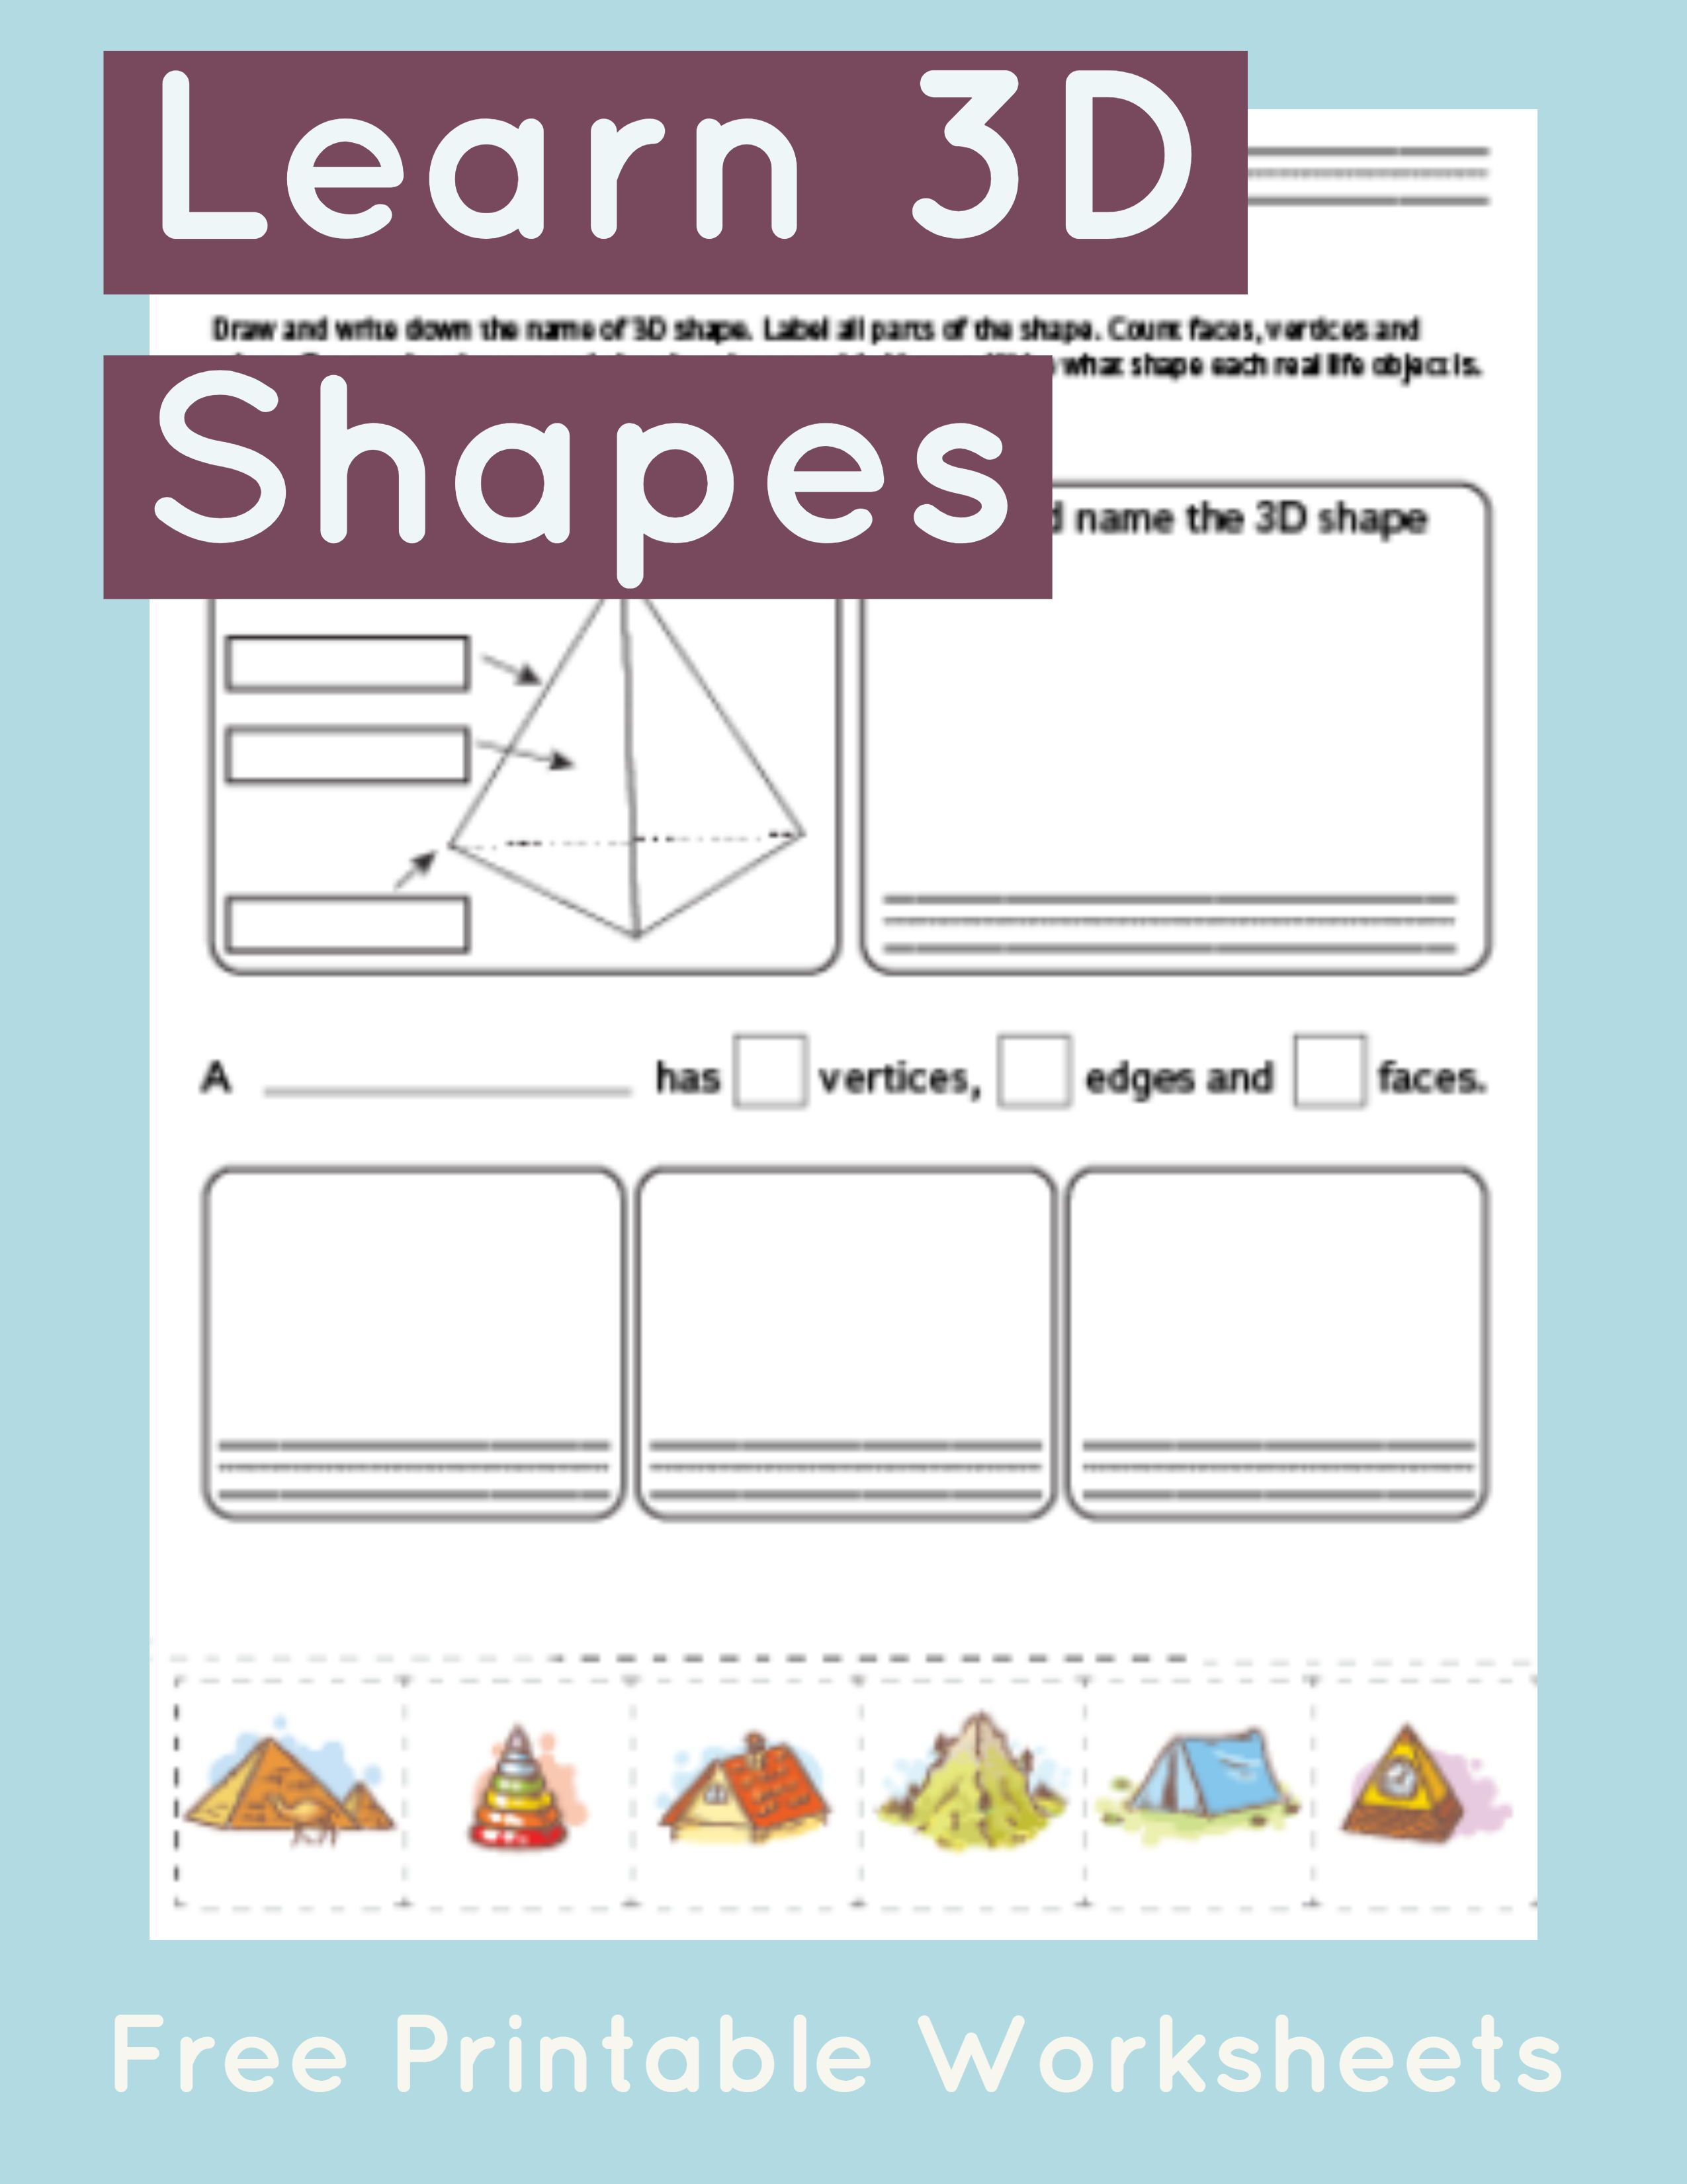 medium resolution of 3d Shapes Faces Edges Vertices Worksheet   Printable Worksheets and  Activities for Teachers